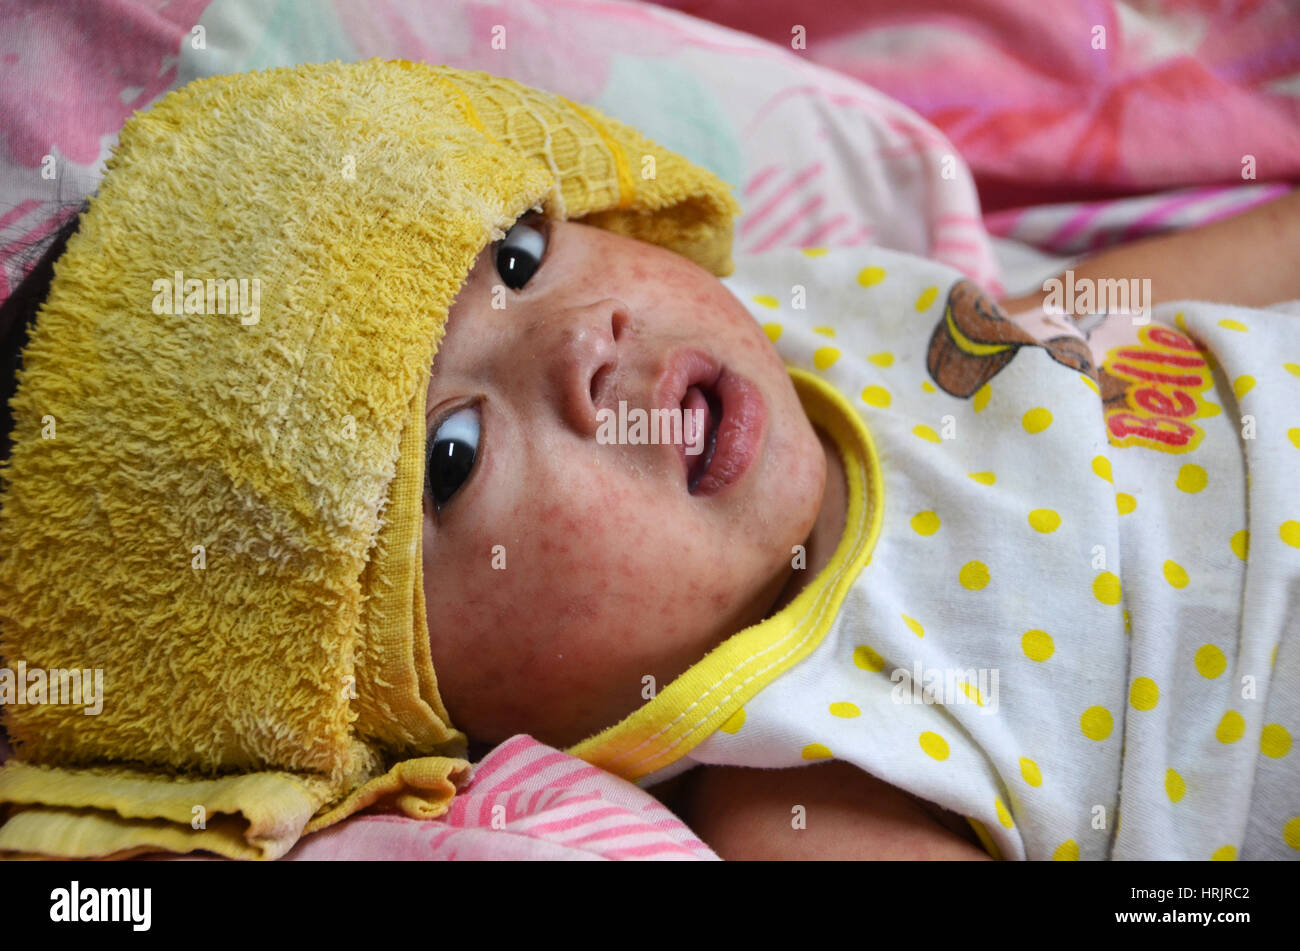 Baby with Measles Rash, 2014 - Stock Image